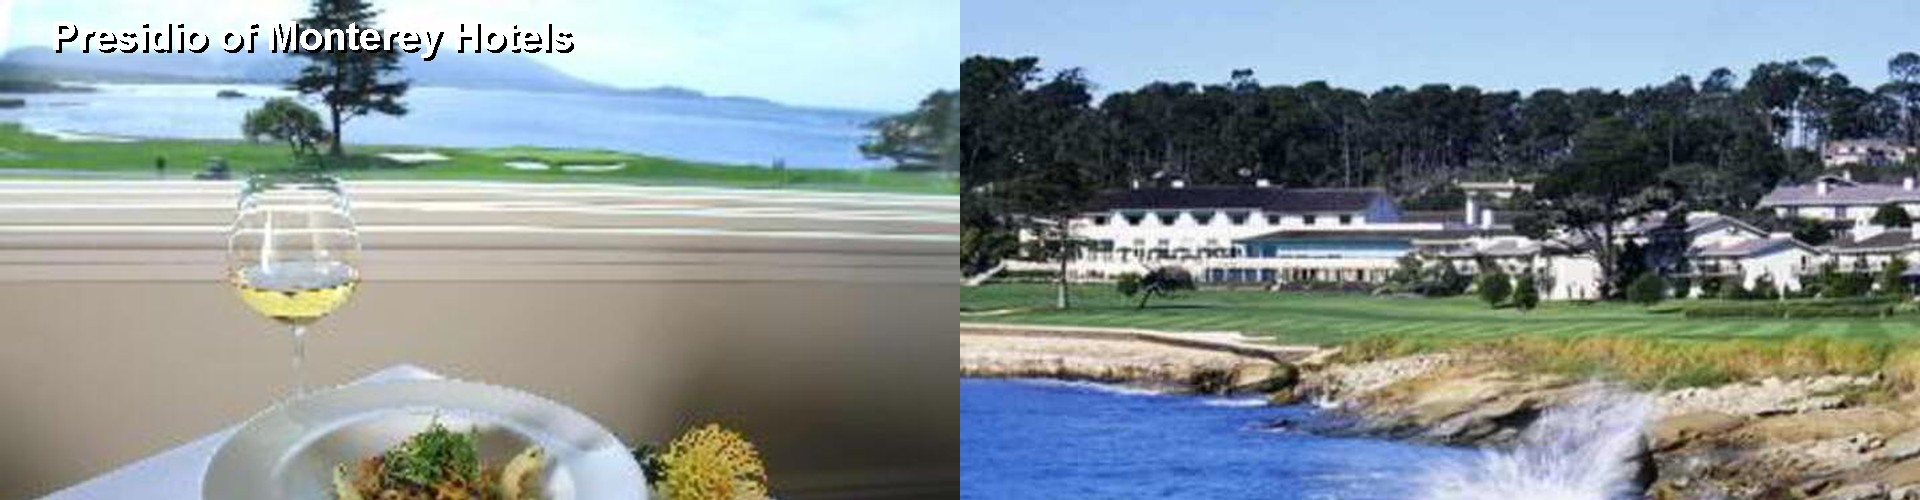 5 Best Hotels near Presidio of Monterey